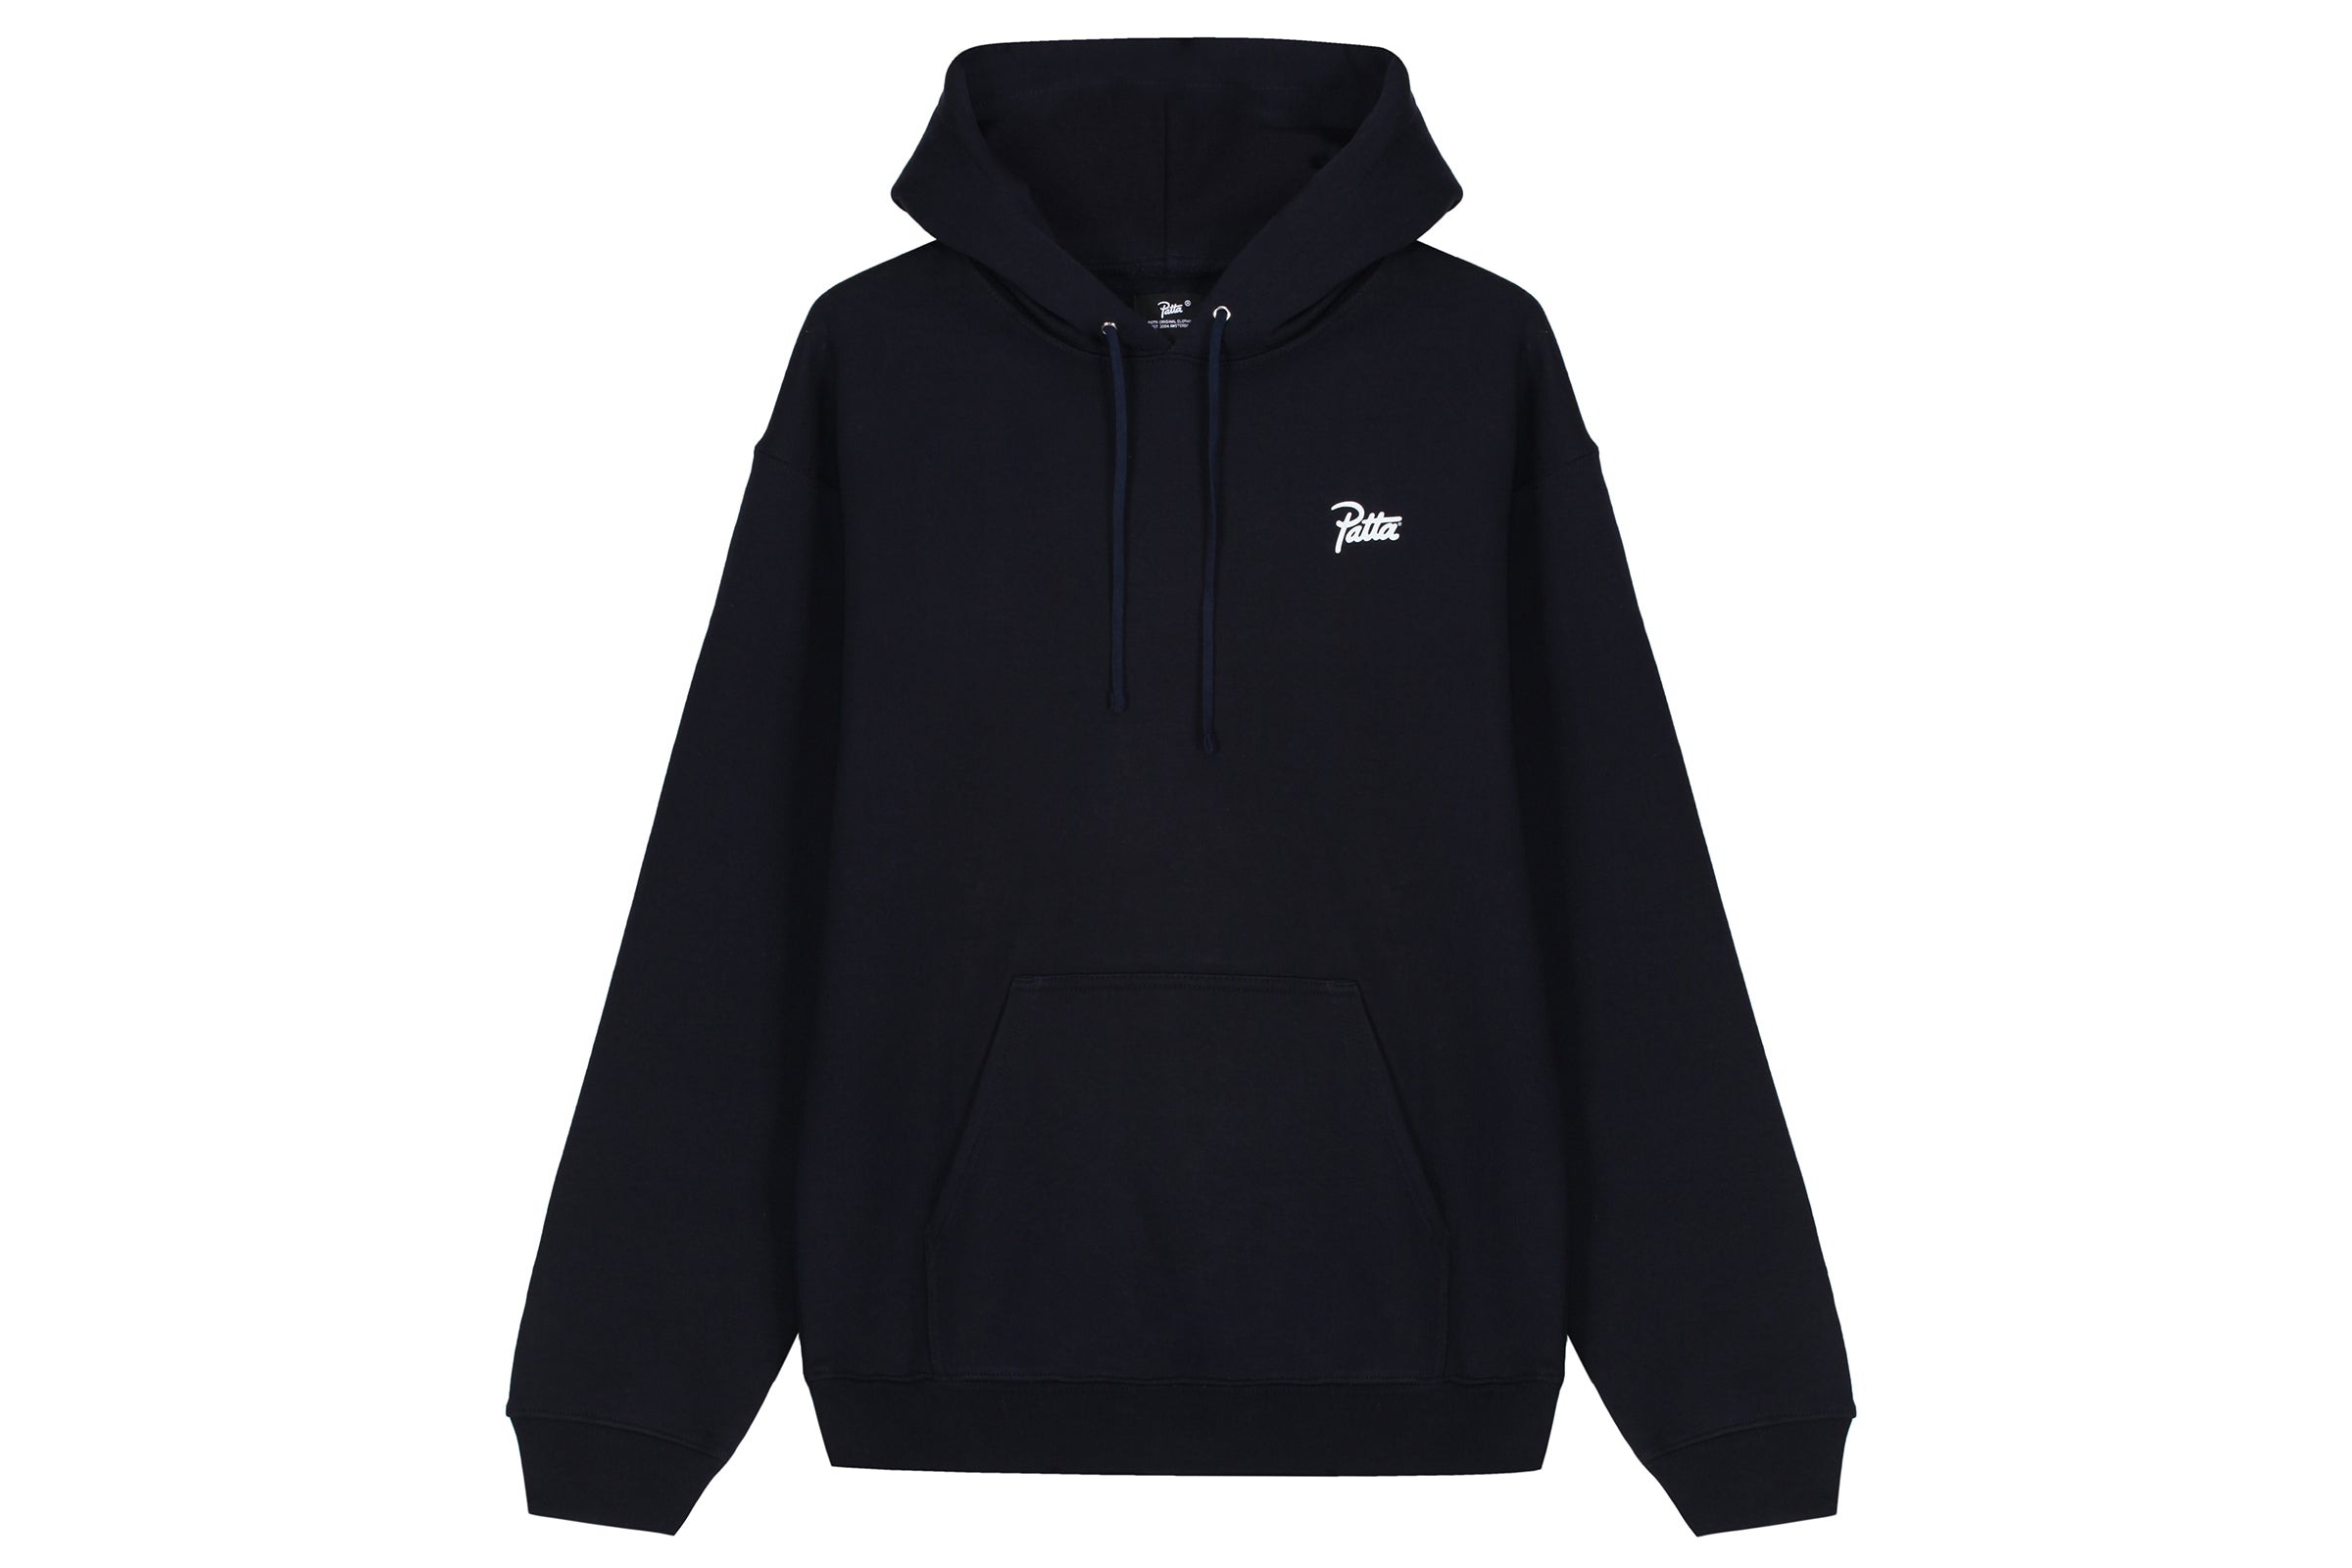 Patta Webbed Hooded Sweater